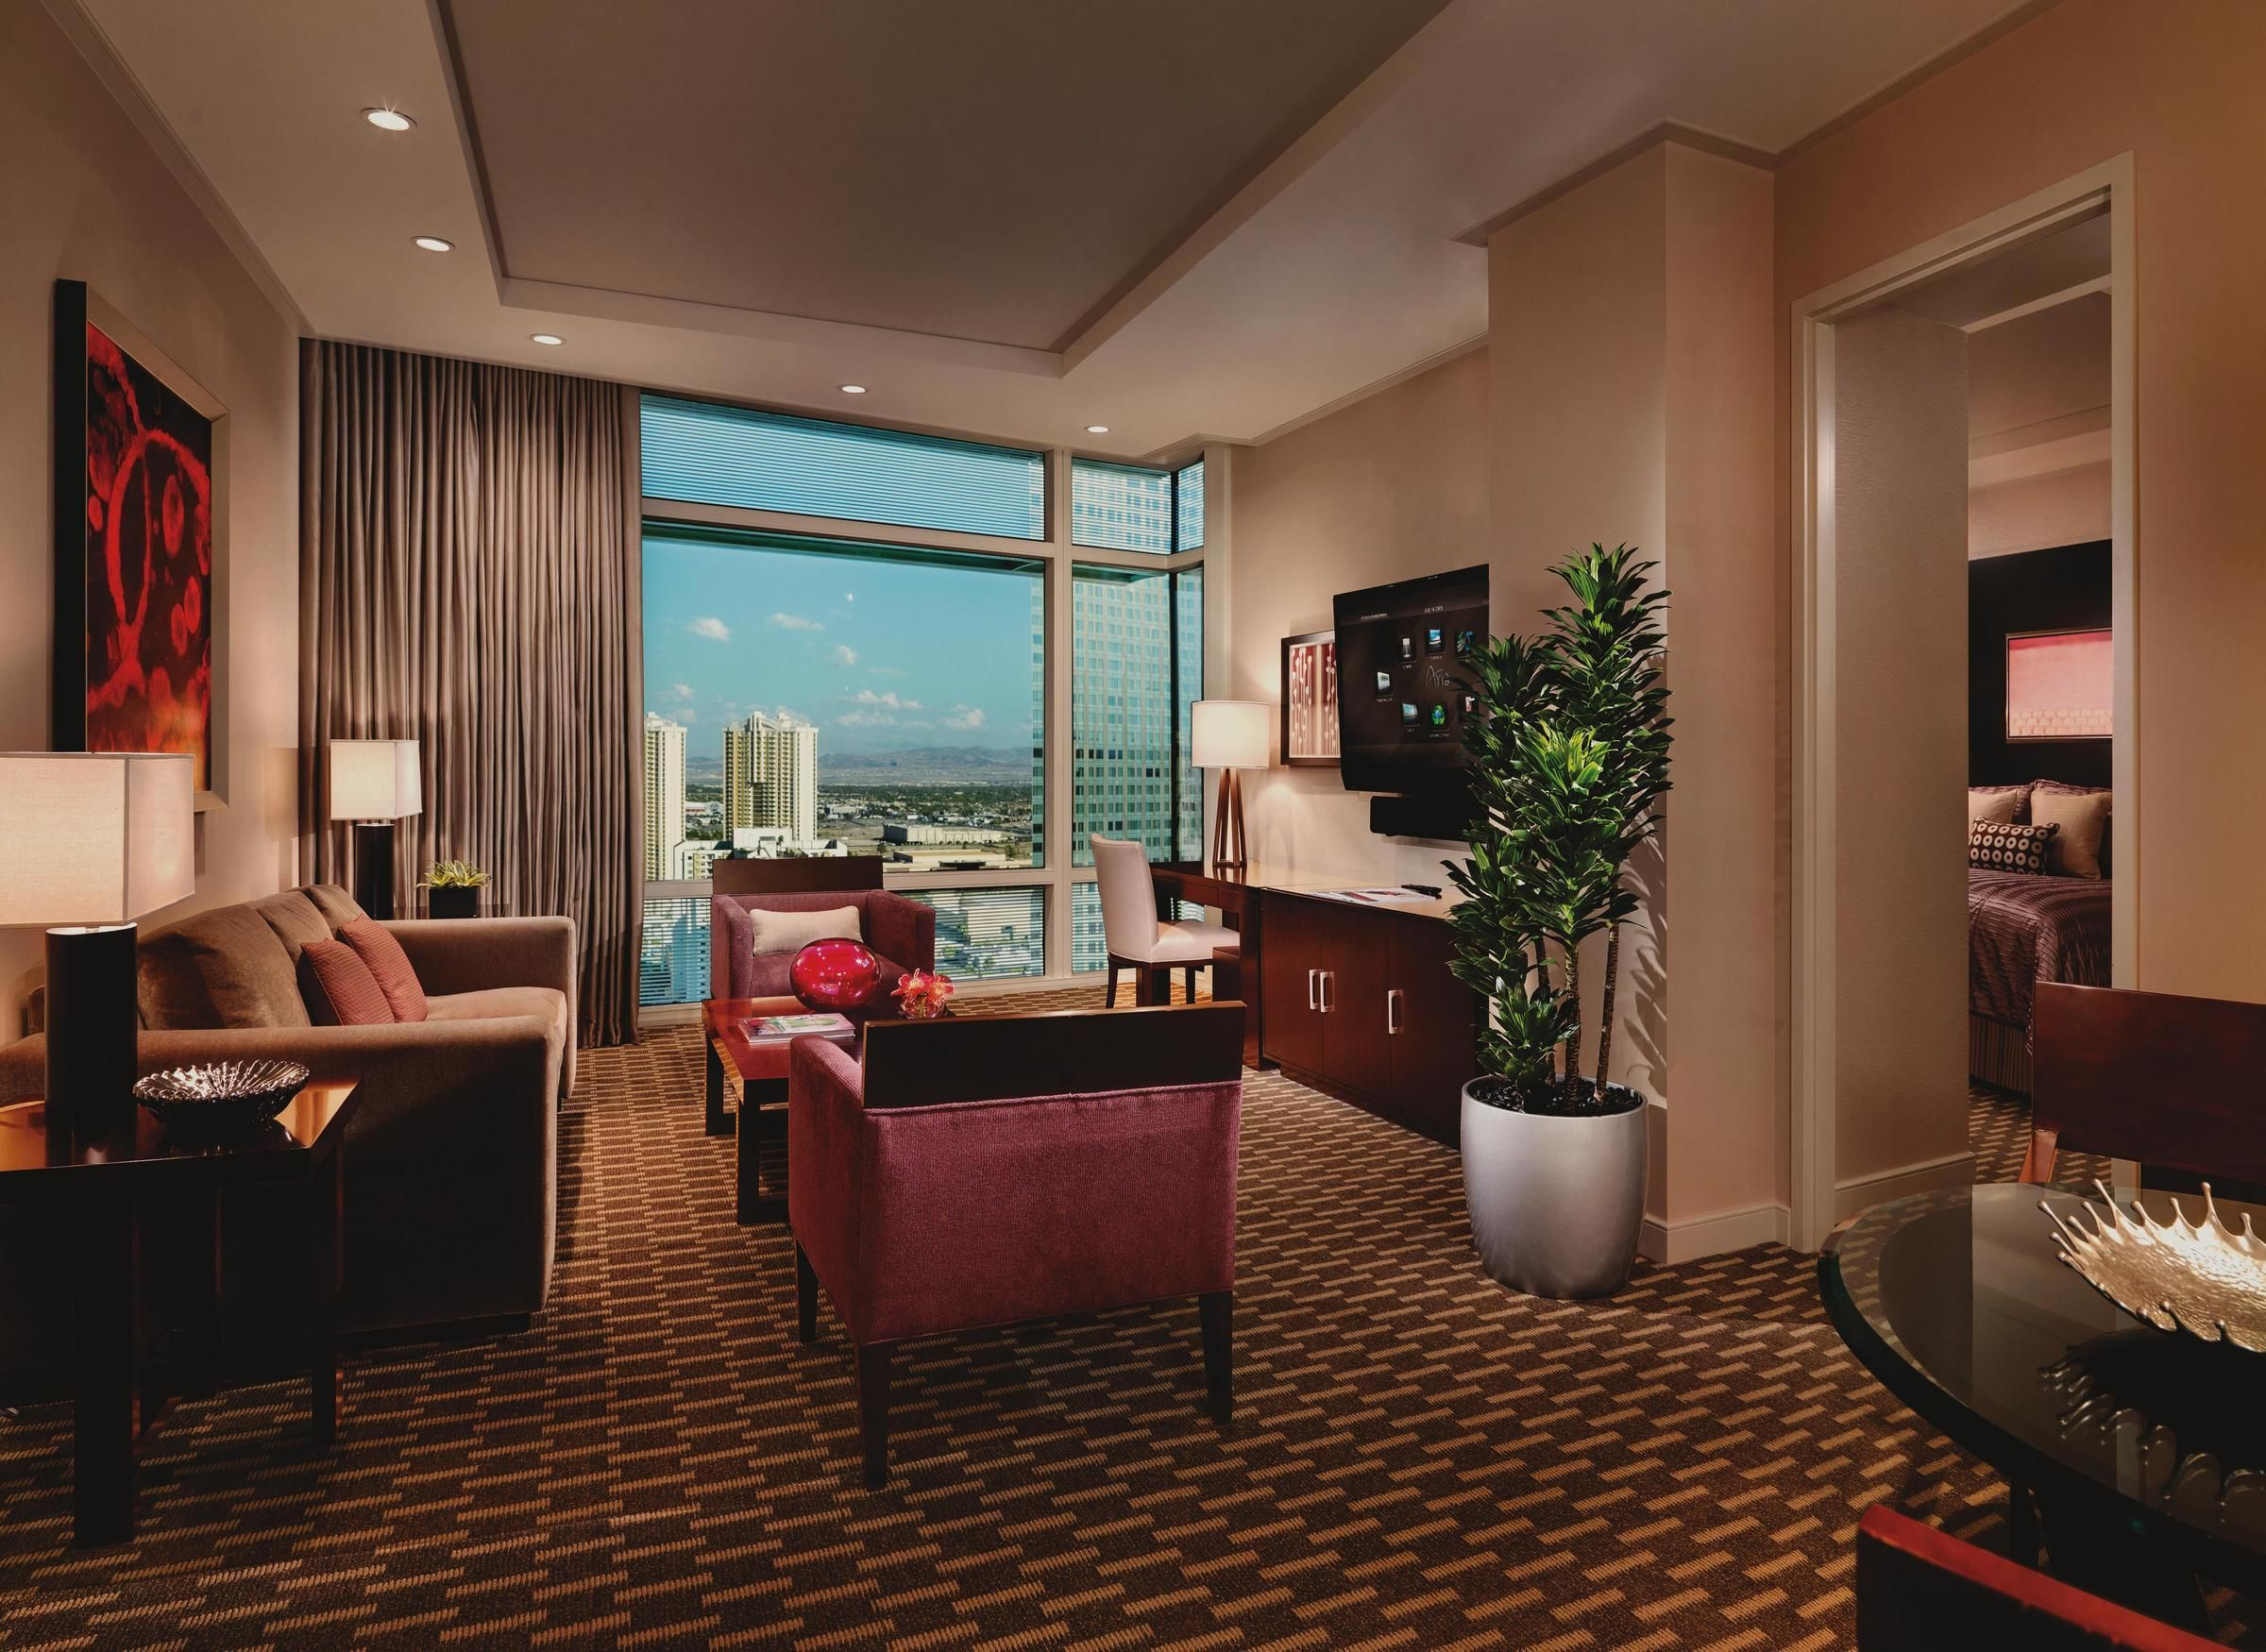 One Bedroom Suites At Aria Sky Suites Aria Las Vegas Vegas Hotel Casino Resort